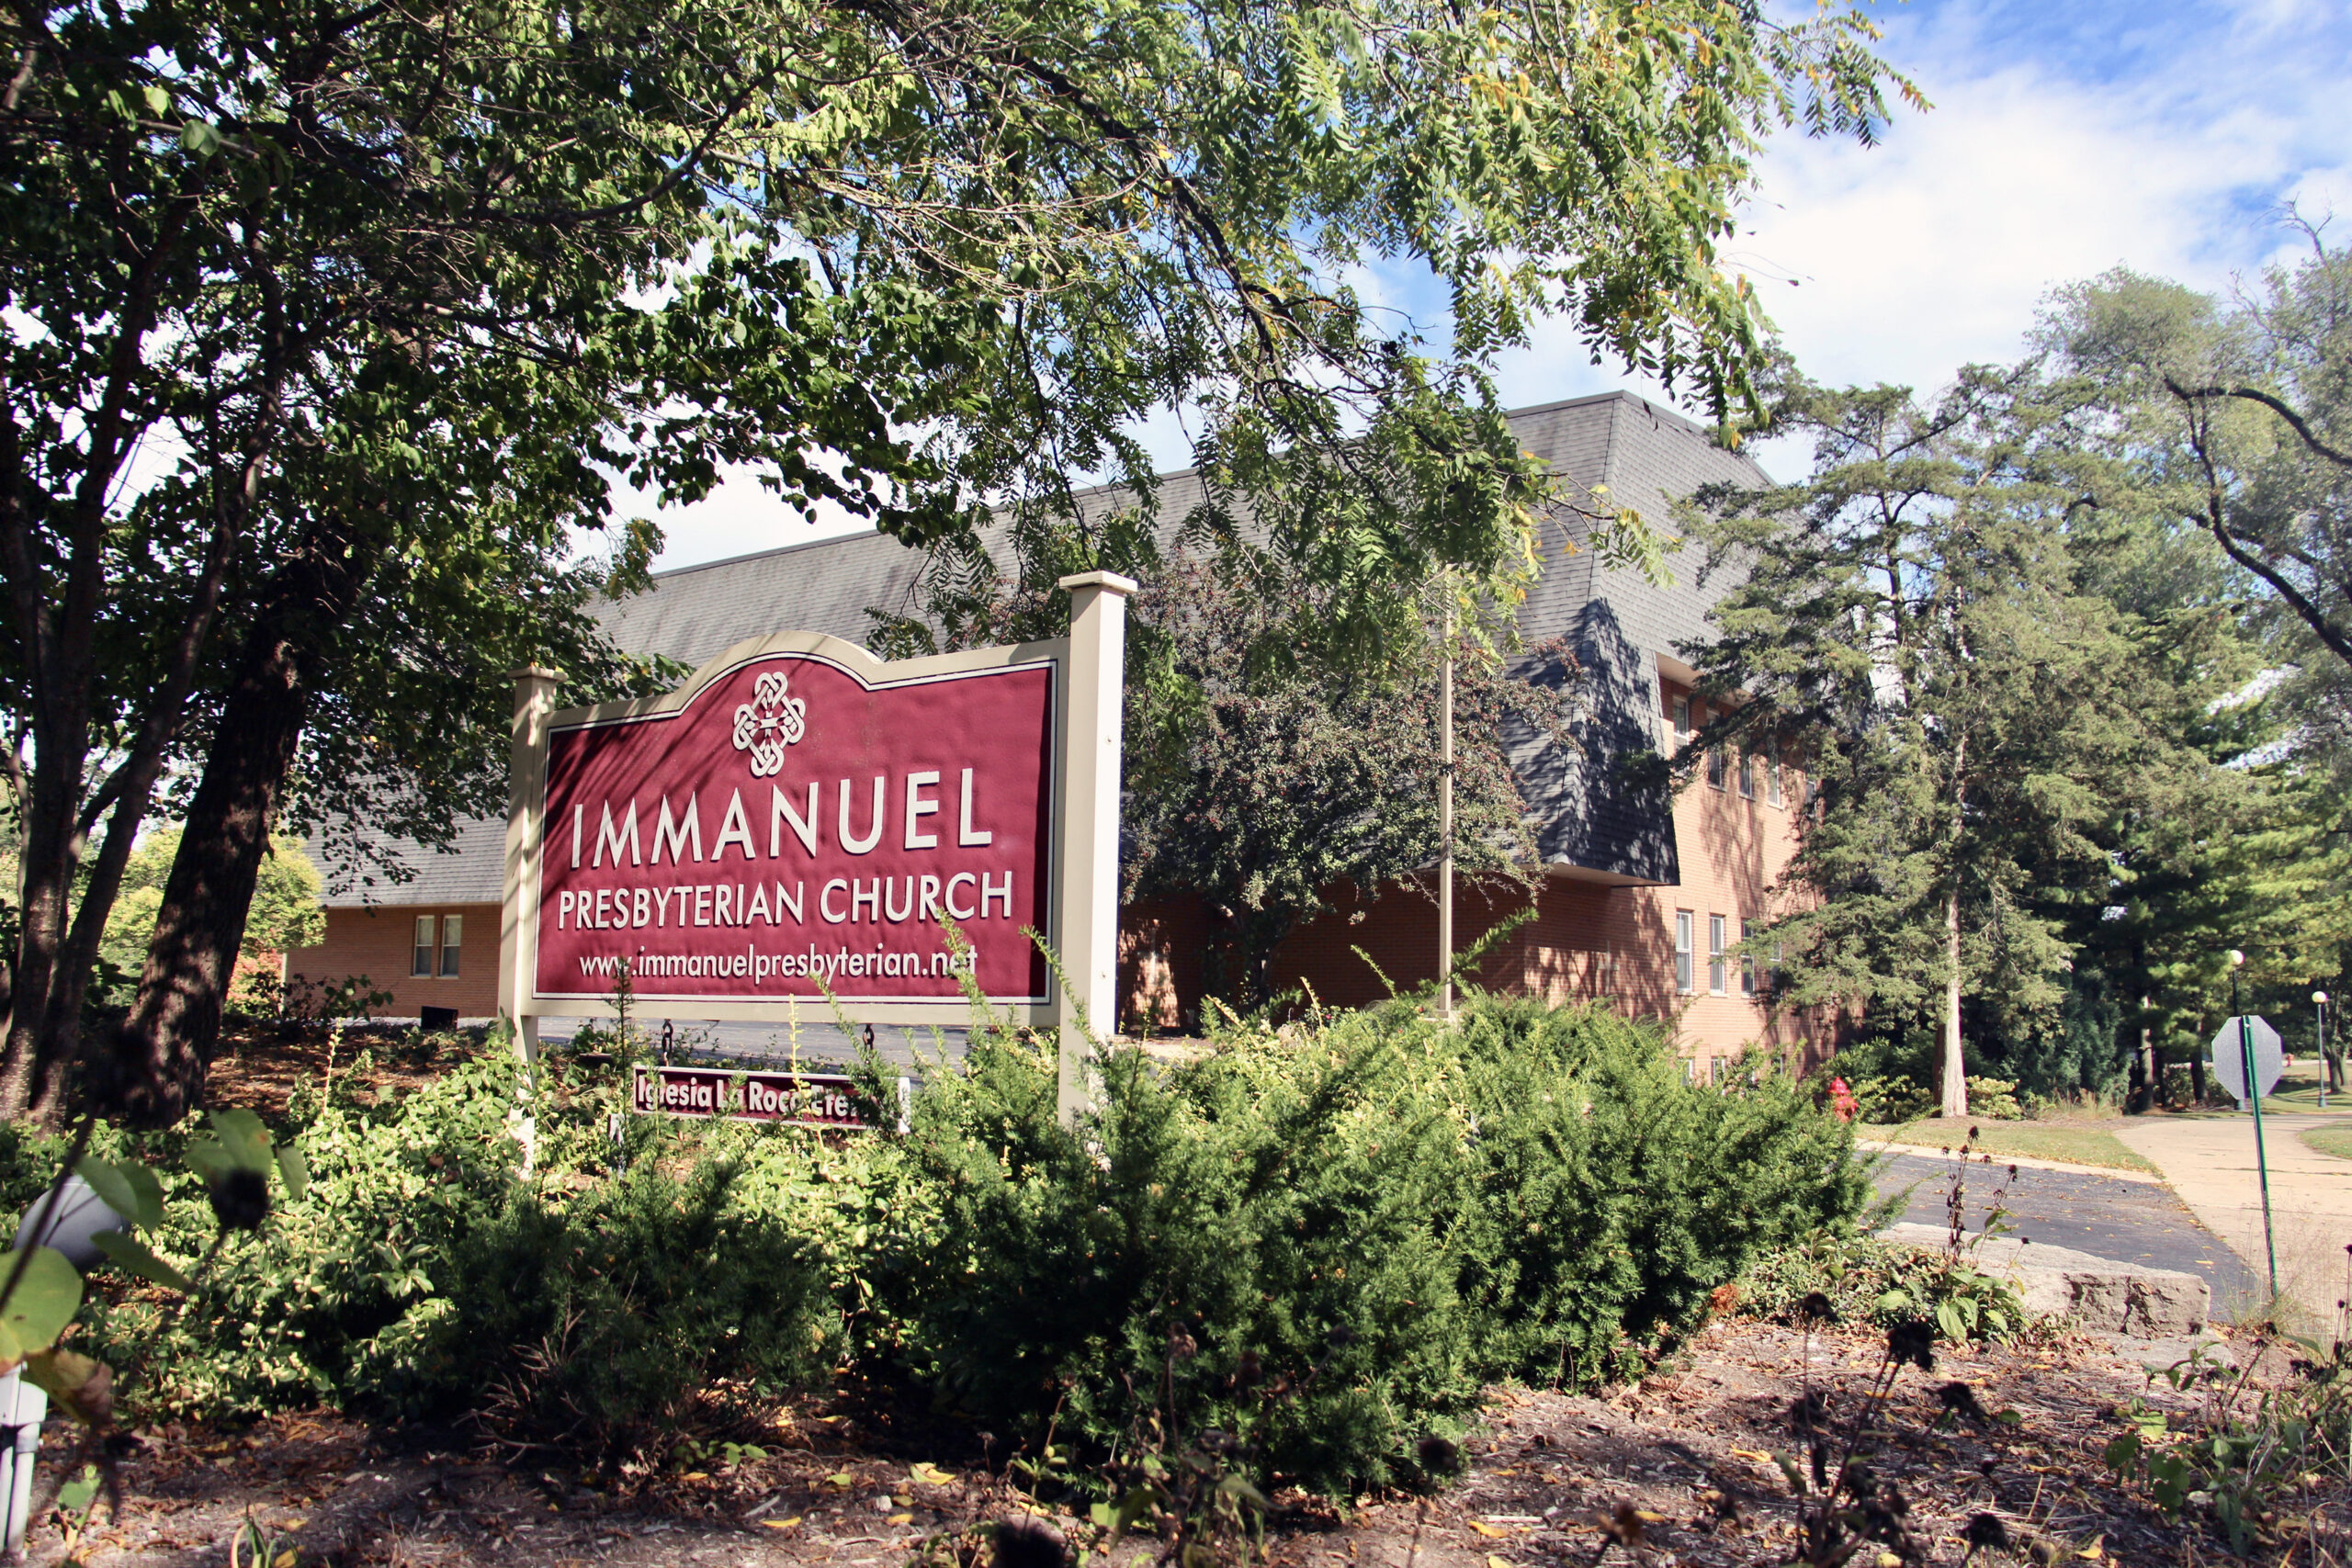 Afghan evacuees welcomed at Immanuel Presbyterian Church - Warrenville, IL